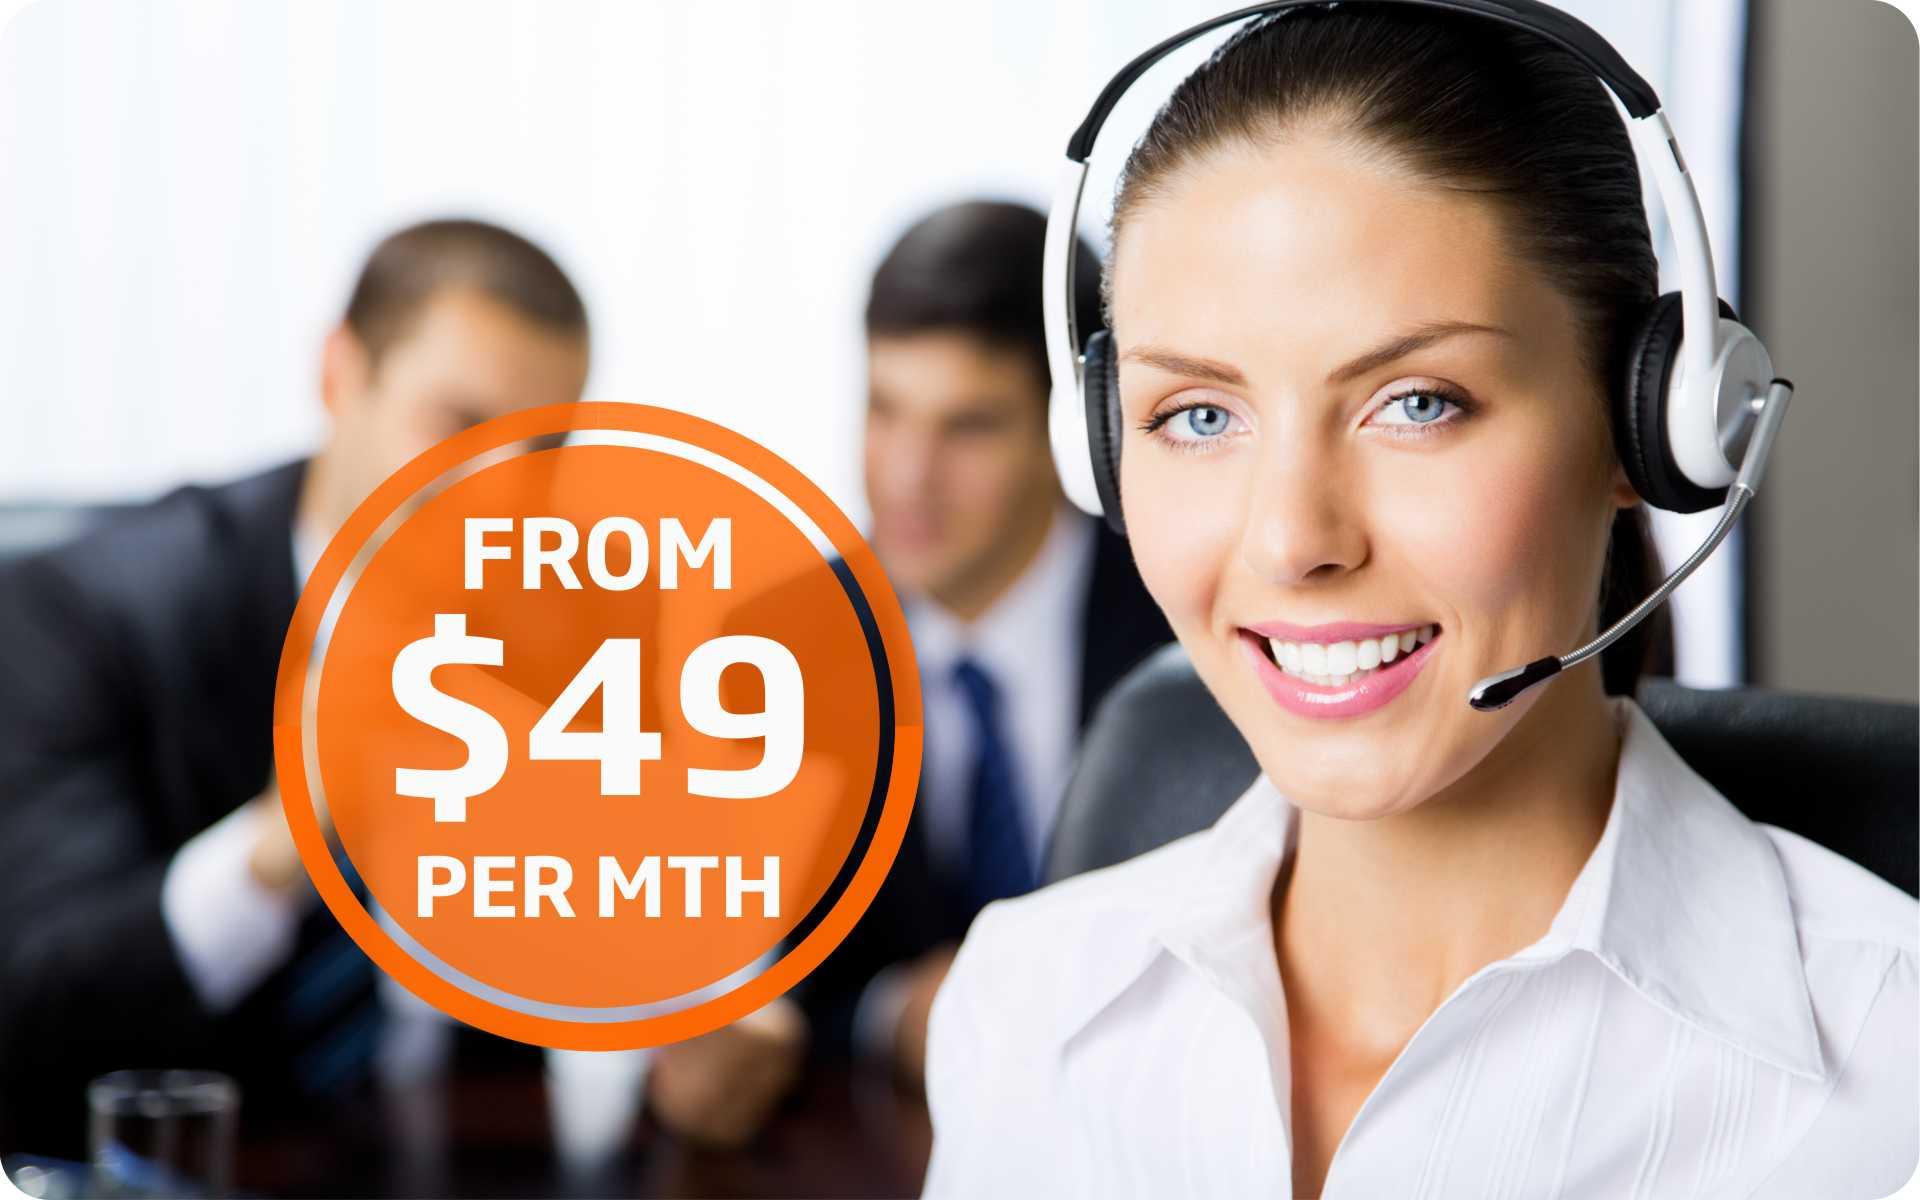 telephone-answering-services-live-phone-answering-service-australia-VR-130418.jpg